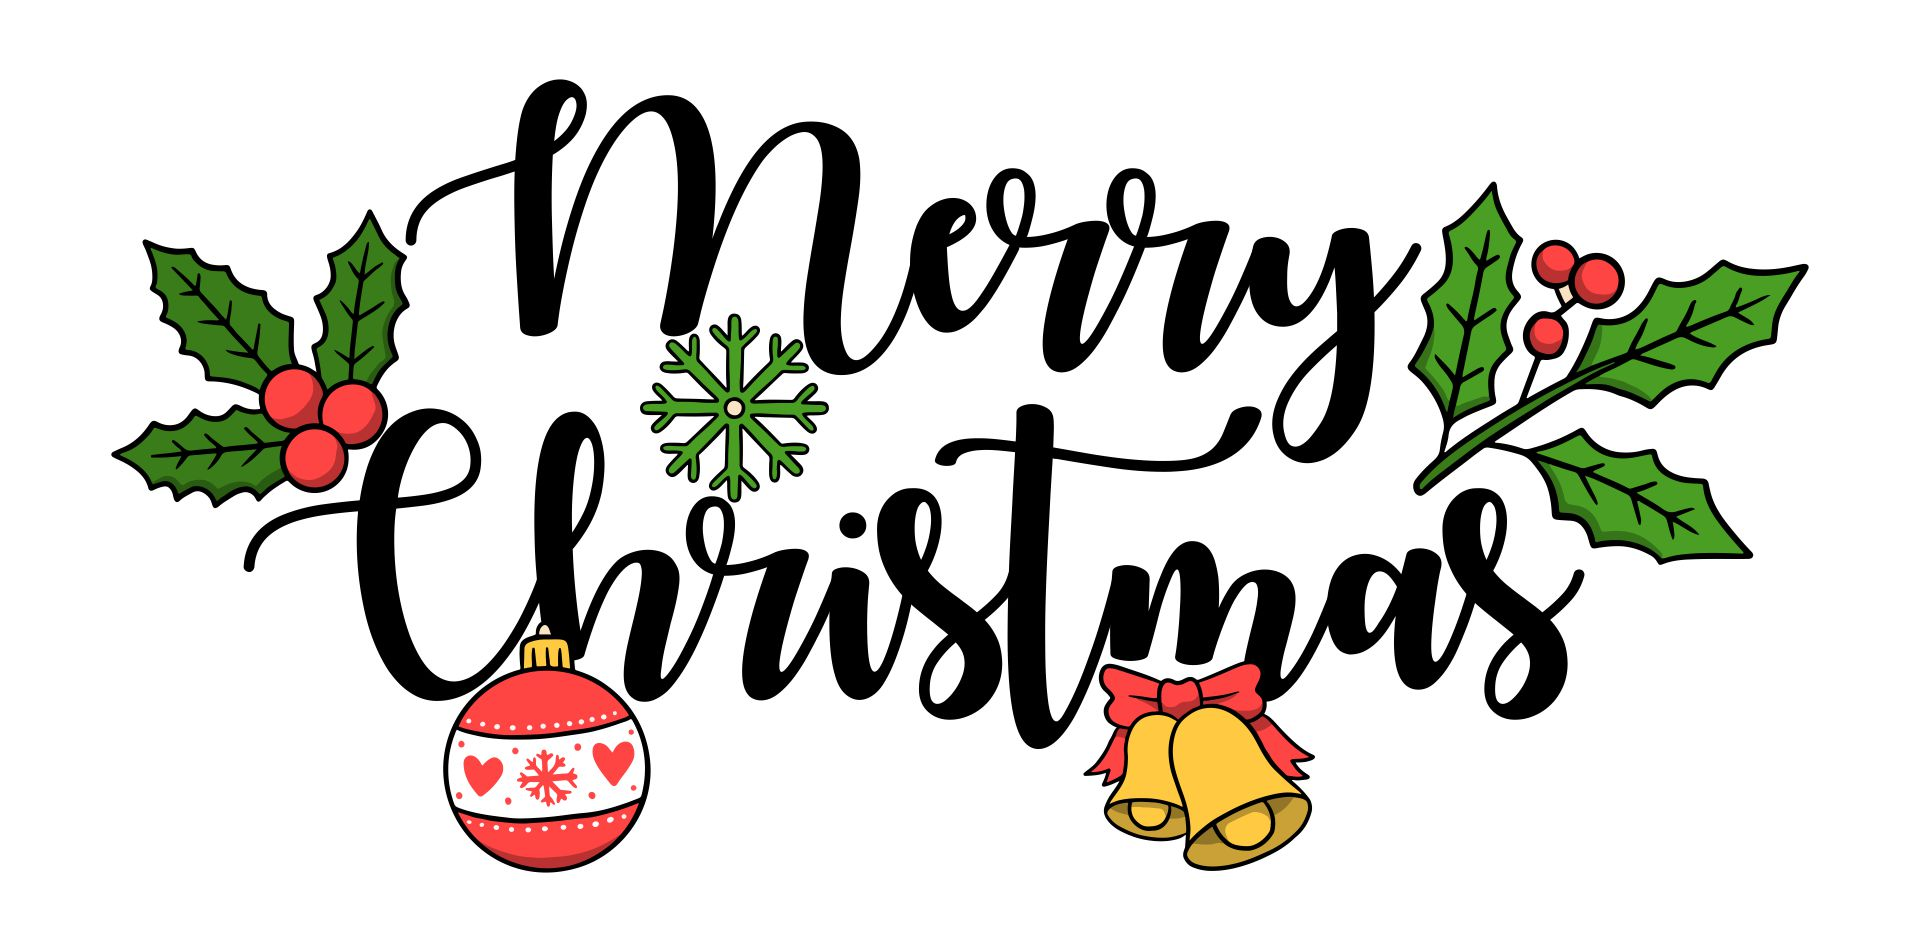 7 Best Images Of Merry Christmas Free Printable Stencil